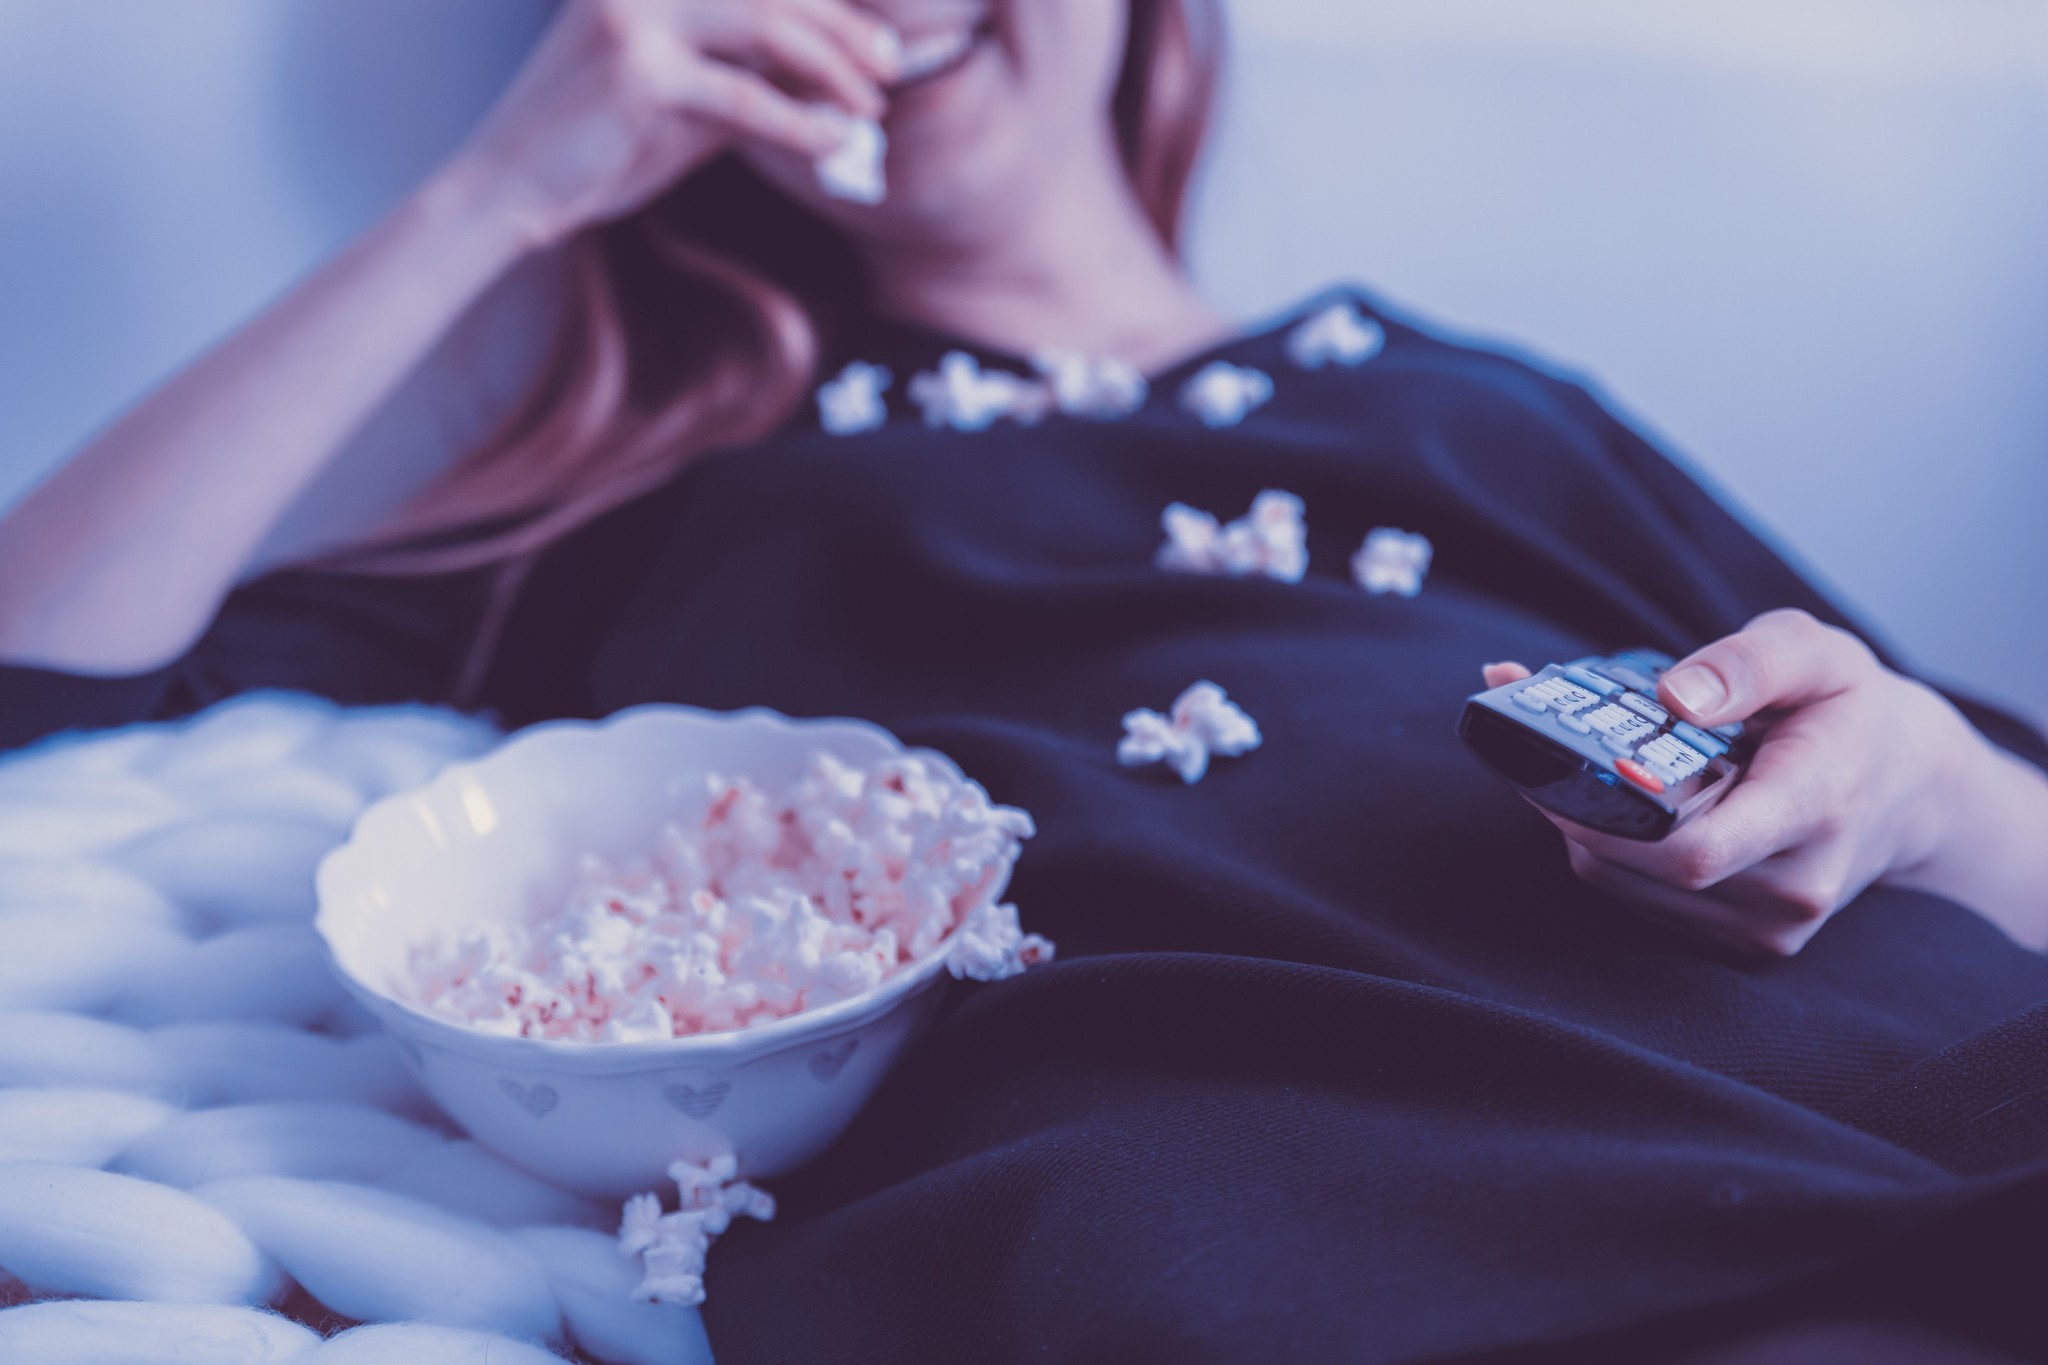 a person watching tv with popcorn